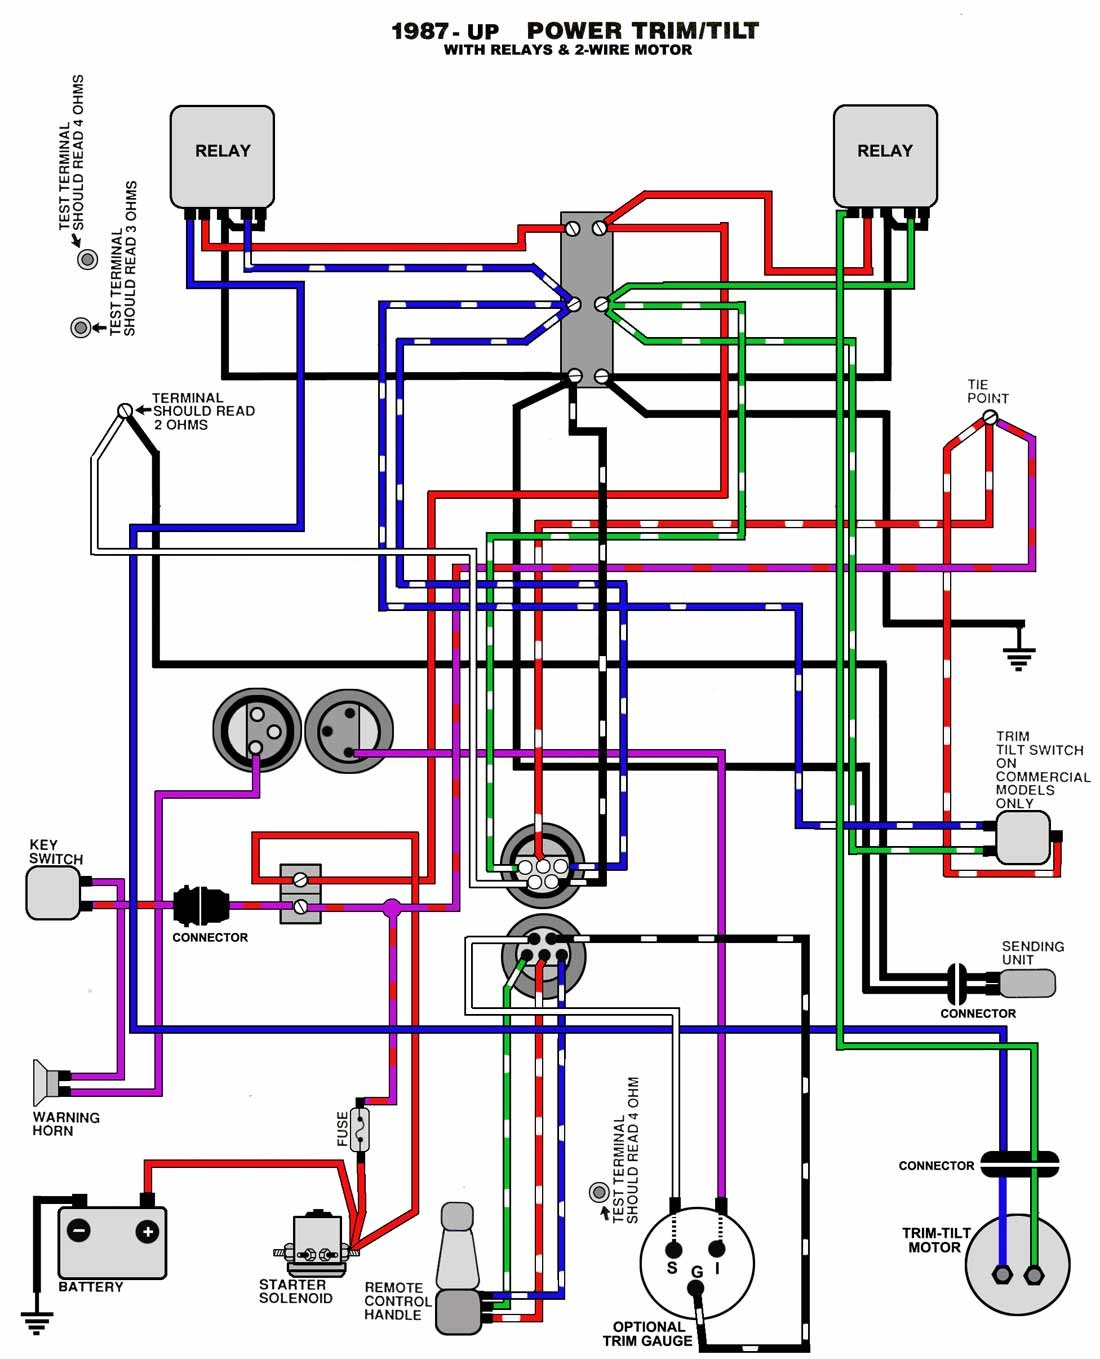 3019 4 Stroke Engine Wiring Diagram Schematic | Wiring LibraryWiring Library